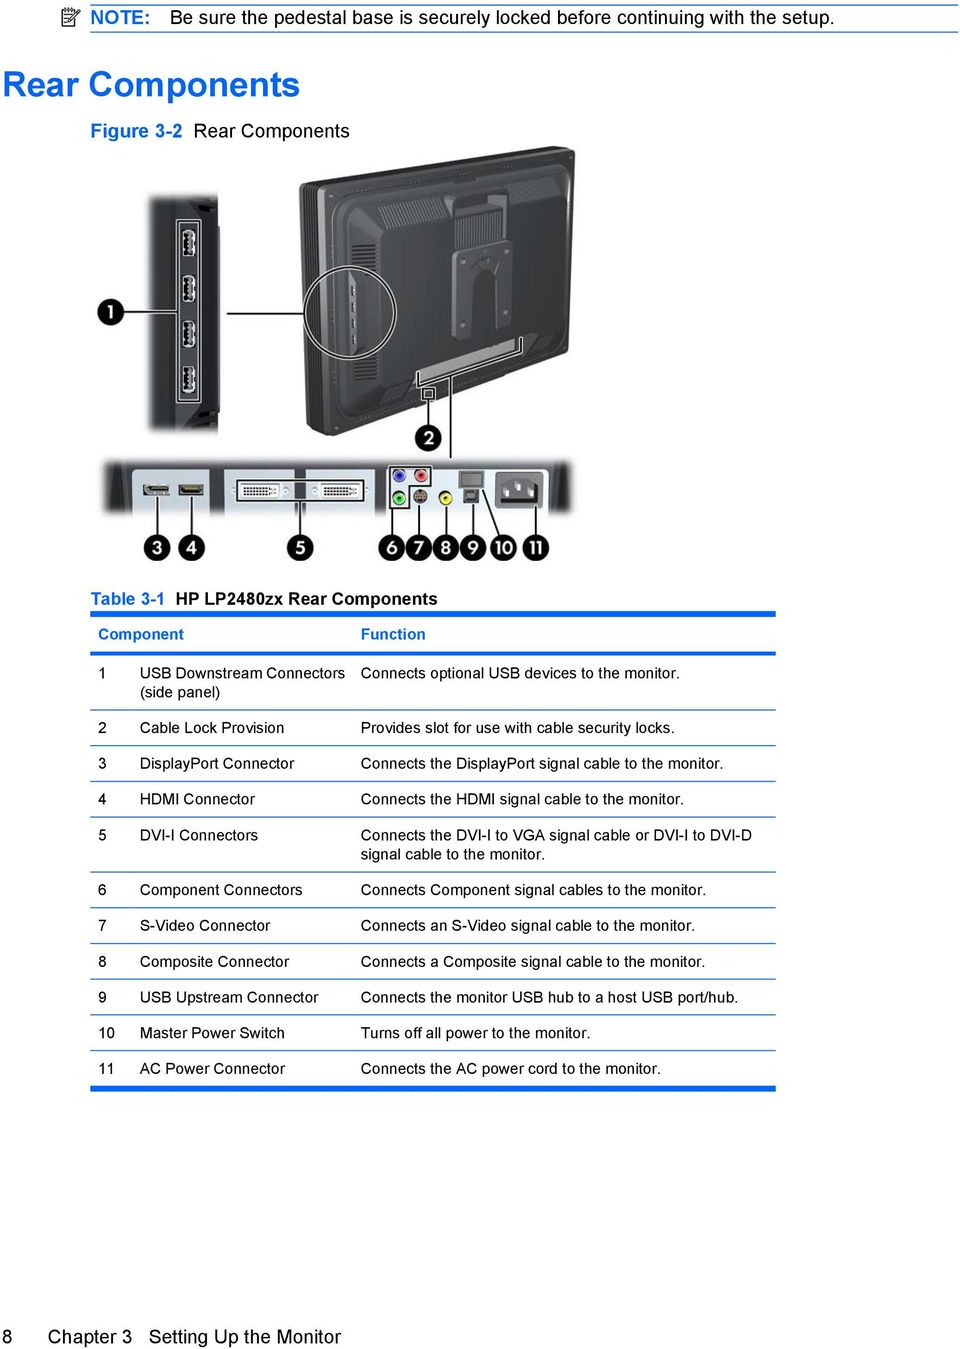 2 Cable Lock Provision Provides slot for use with cable security locks. 3 DisplayPort Connector Connects the DisplayPort signal cable to the monitor.